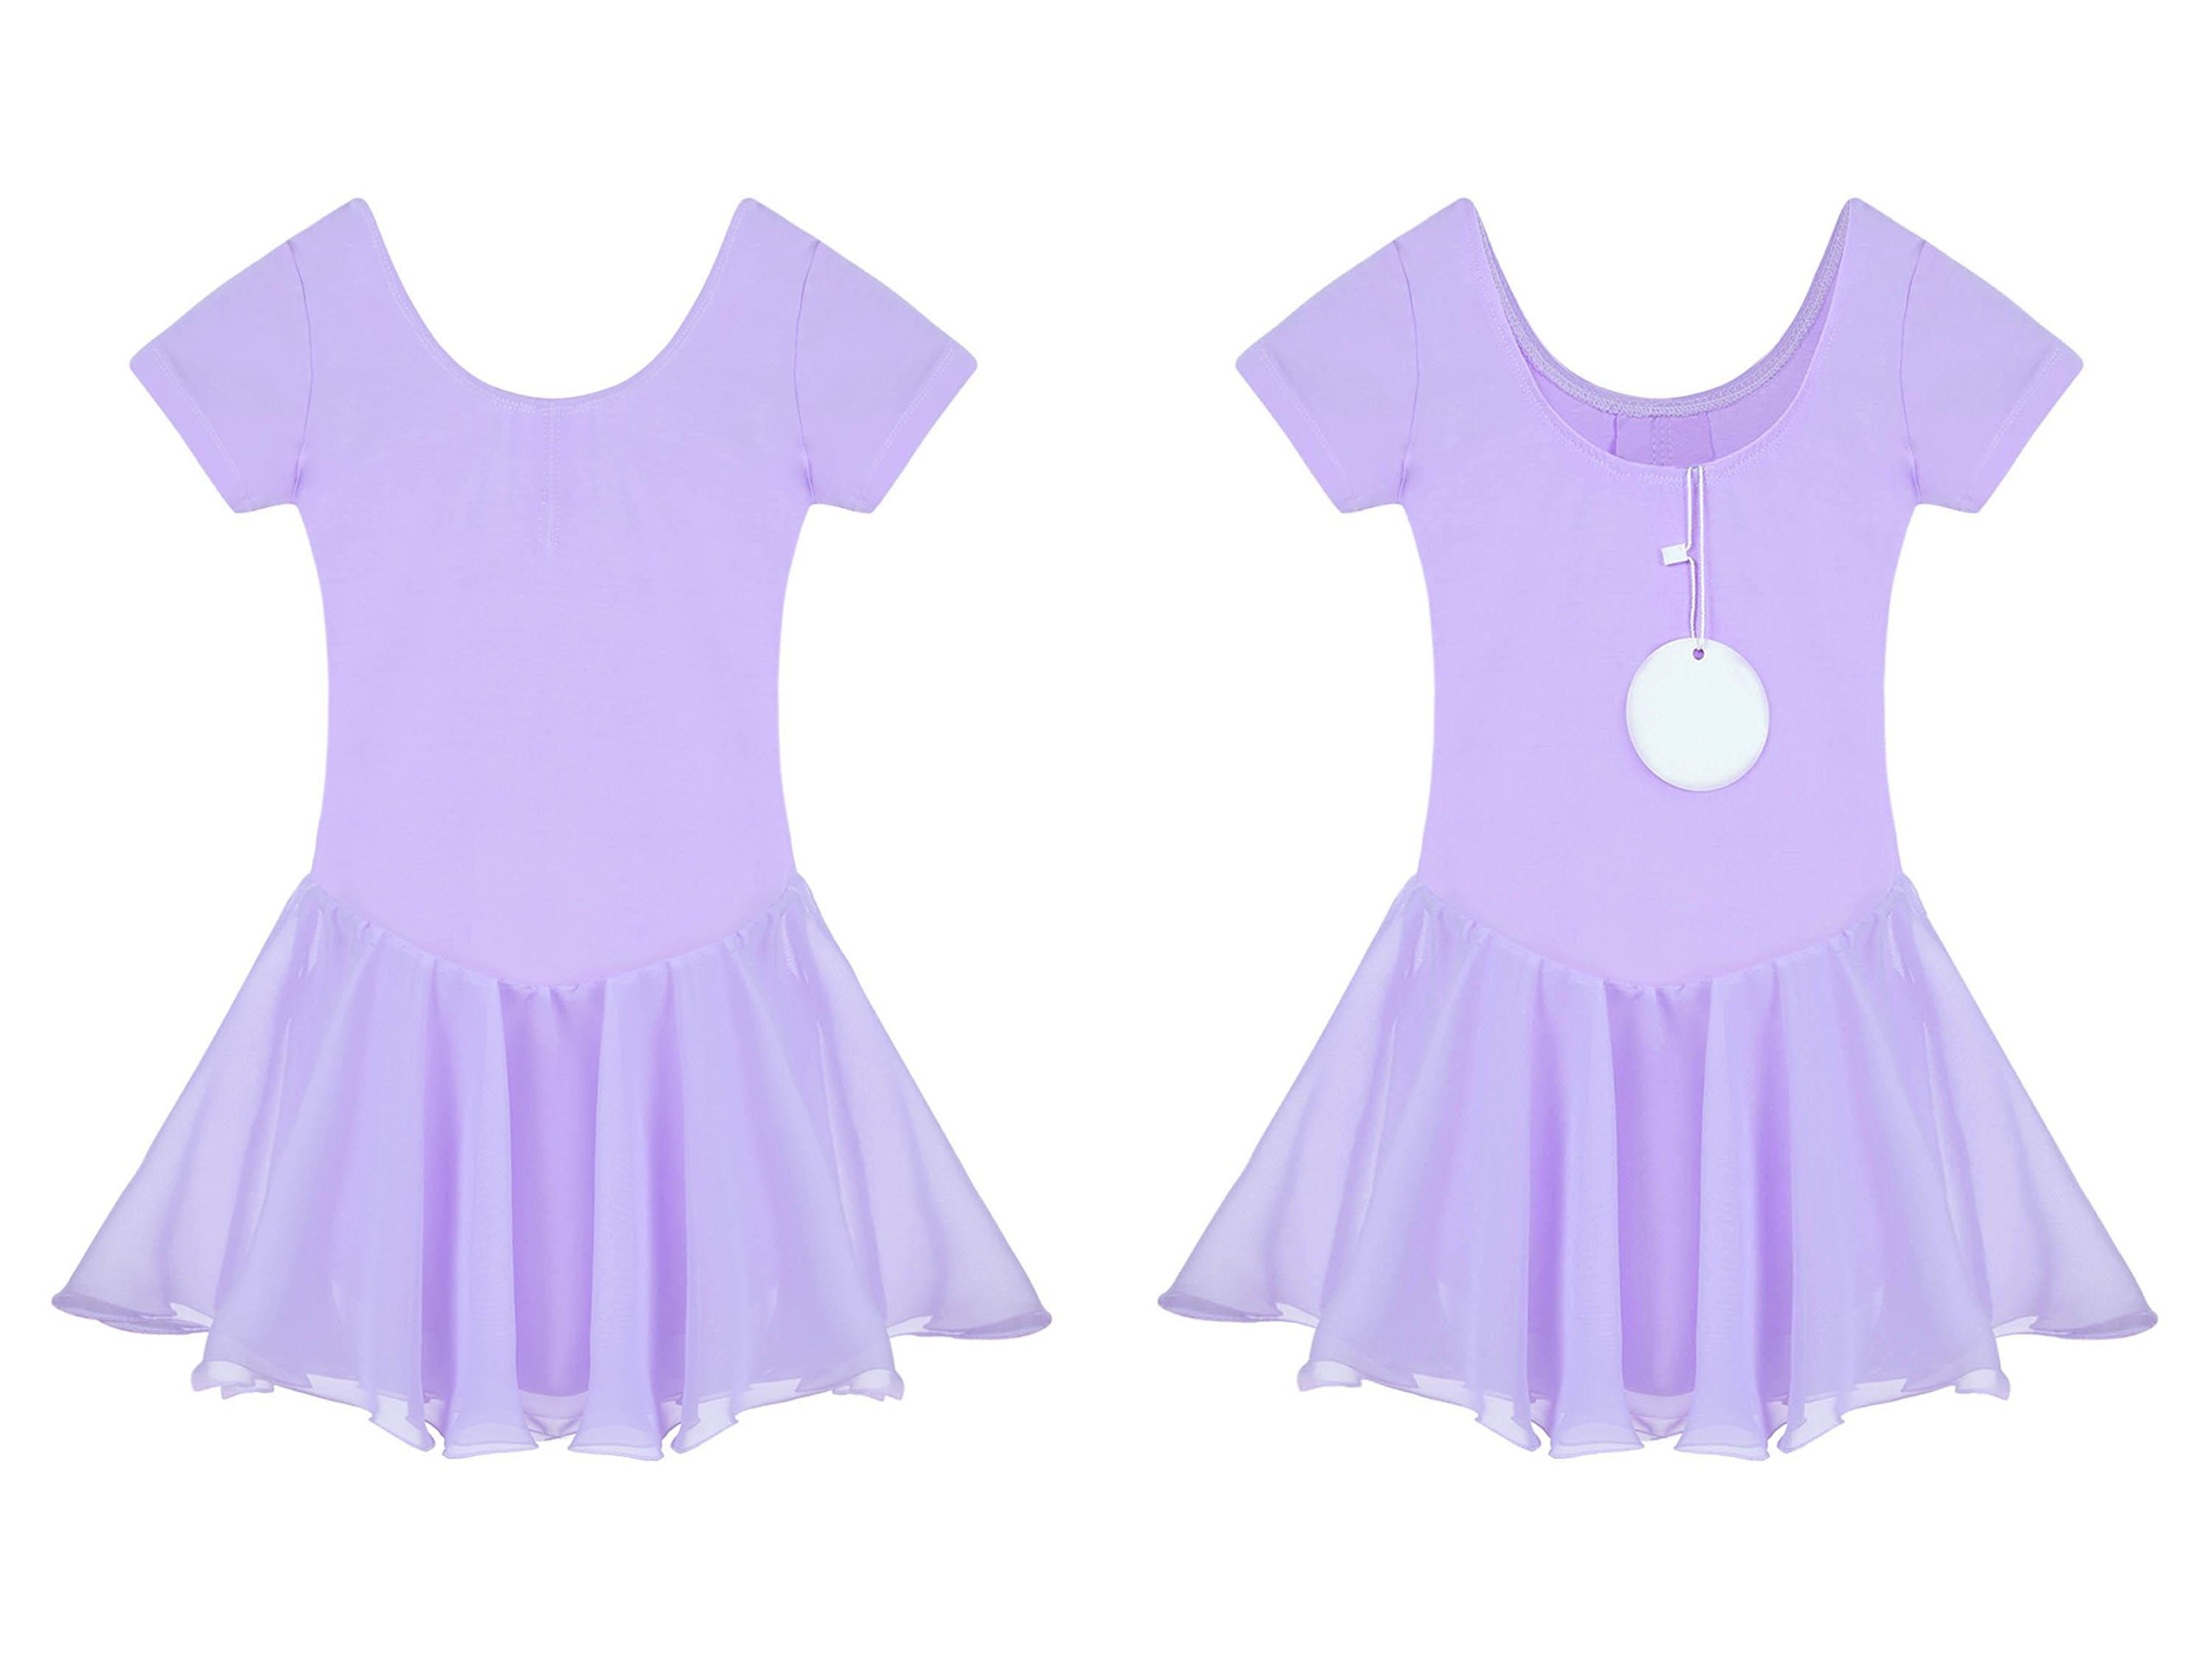 Etuoji Kids Short Sleeve Dance Skirt Girls Round Neck Ruffle Chiffon Dress